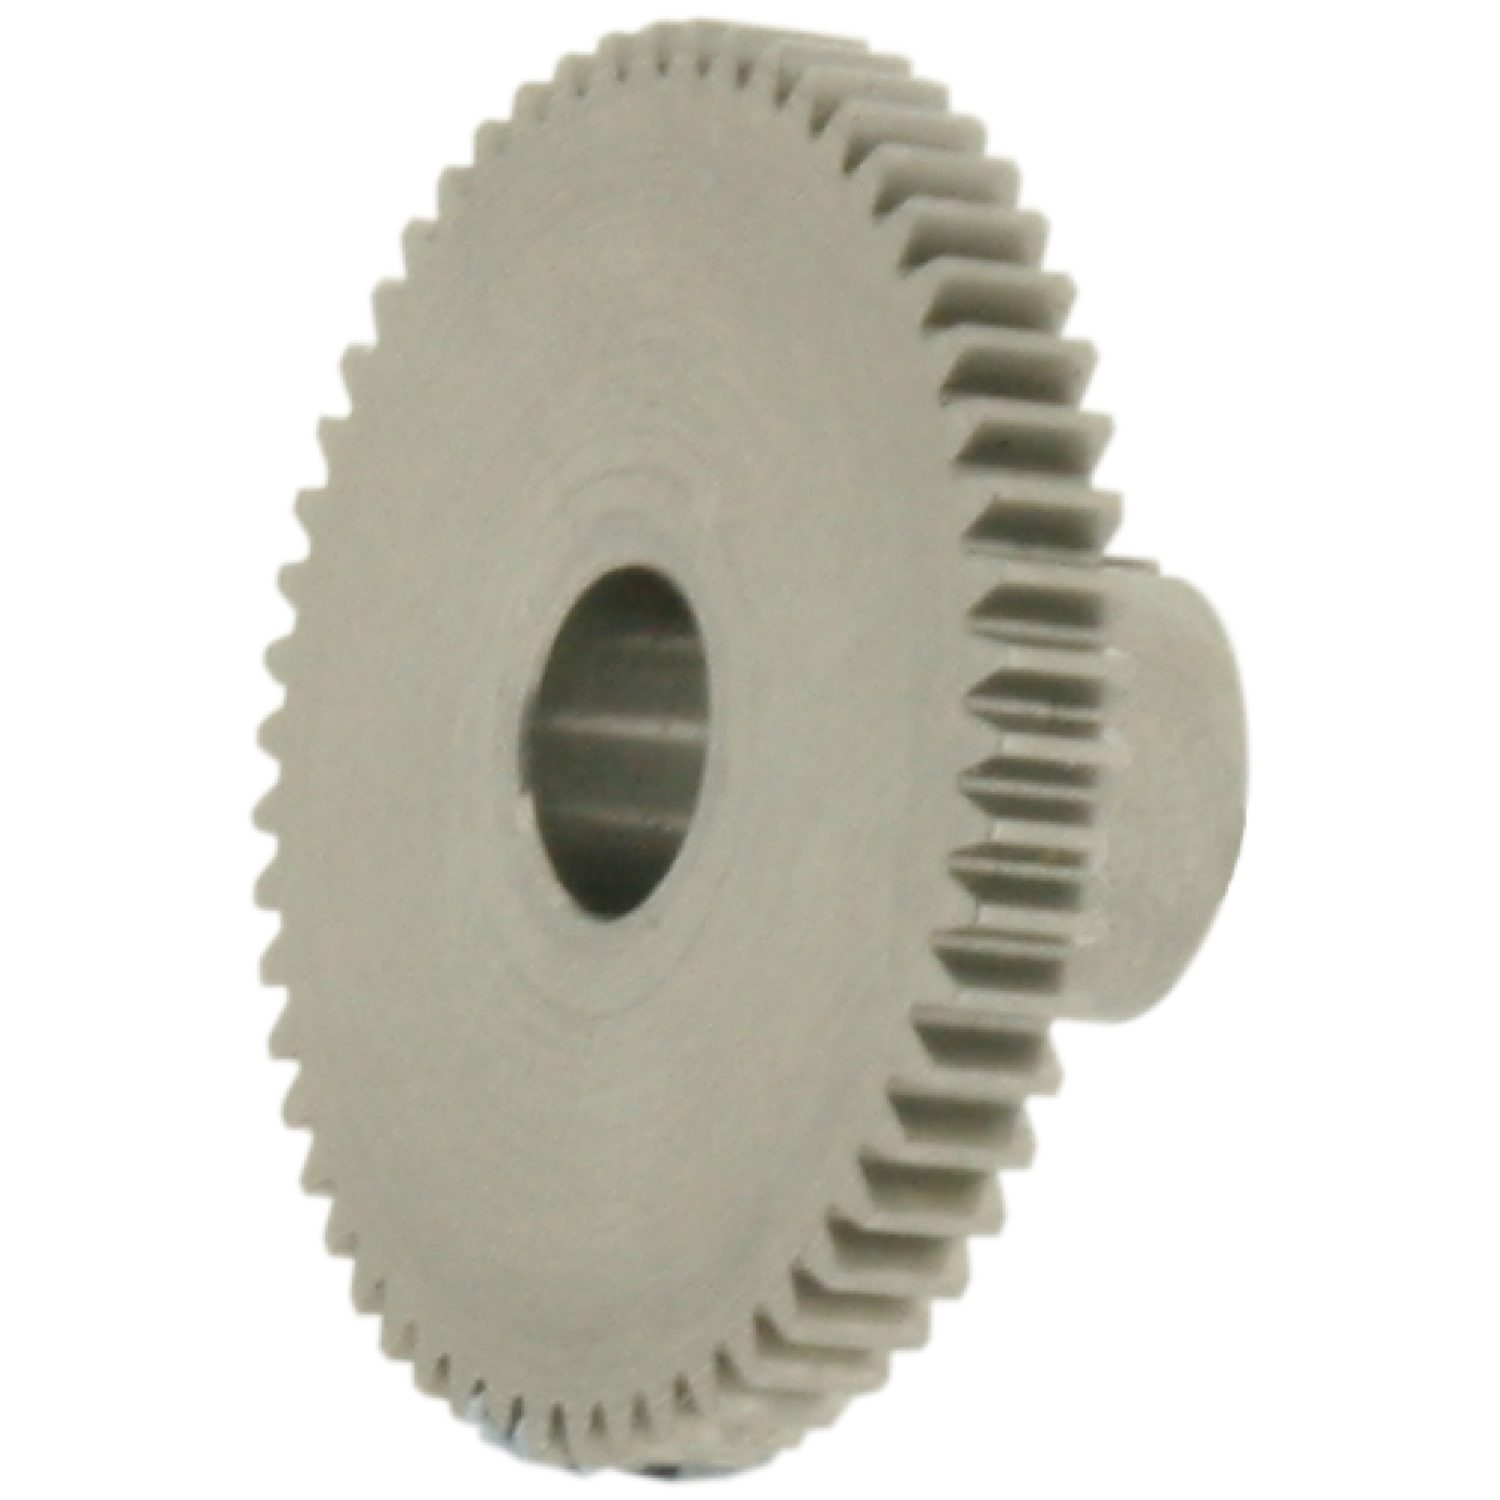 Spur gears 0,6 to 0,25 module